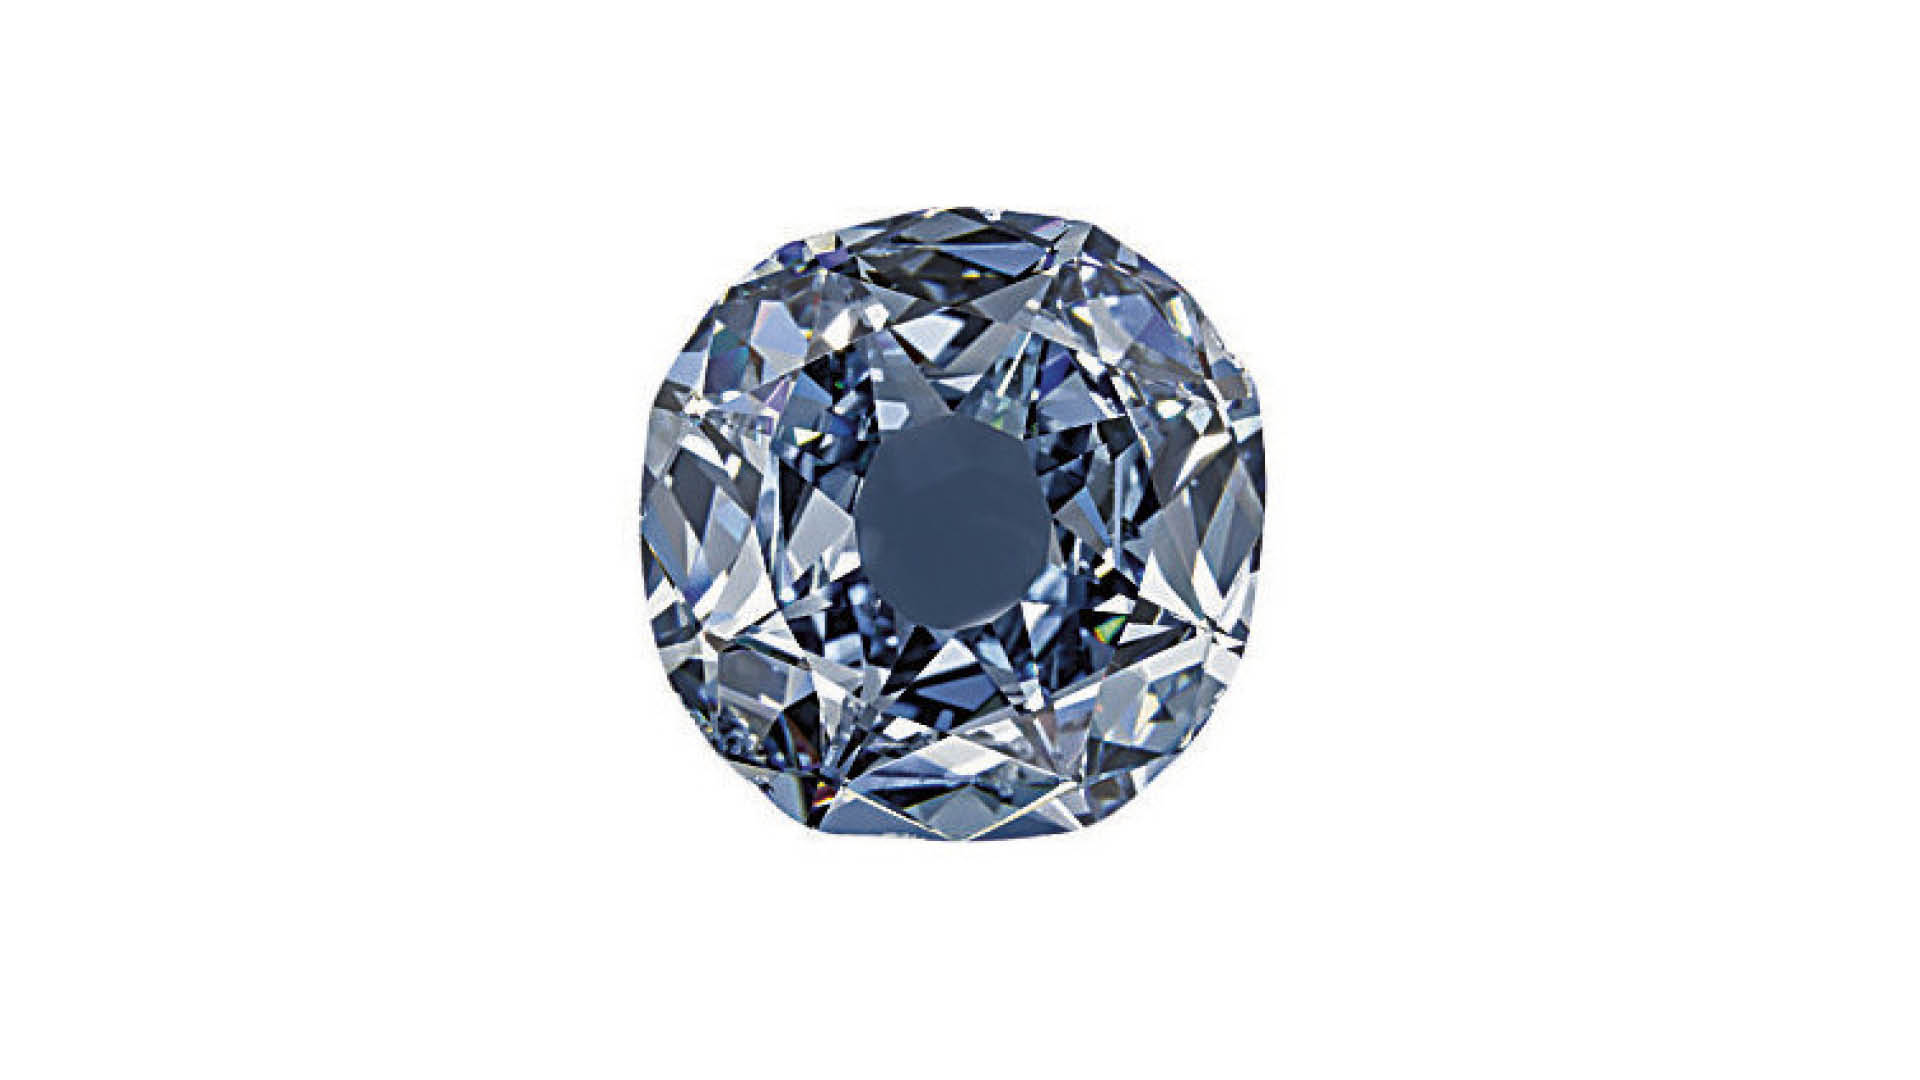 The Wittelsbach Graff Blue Diamond